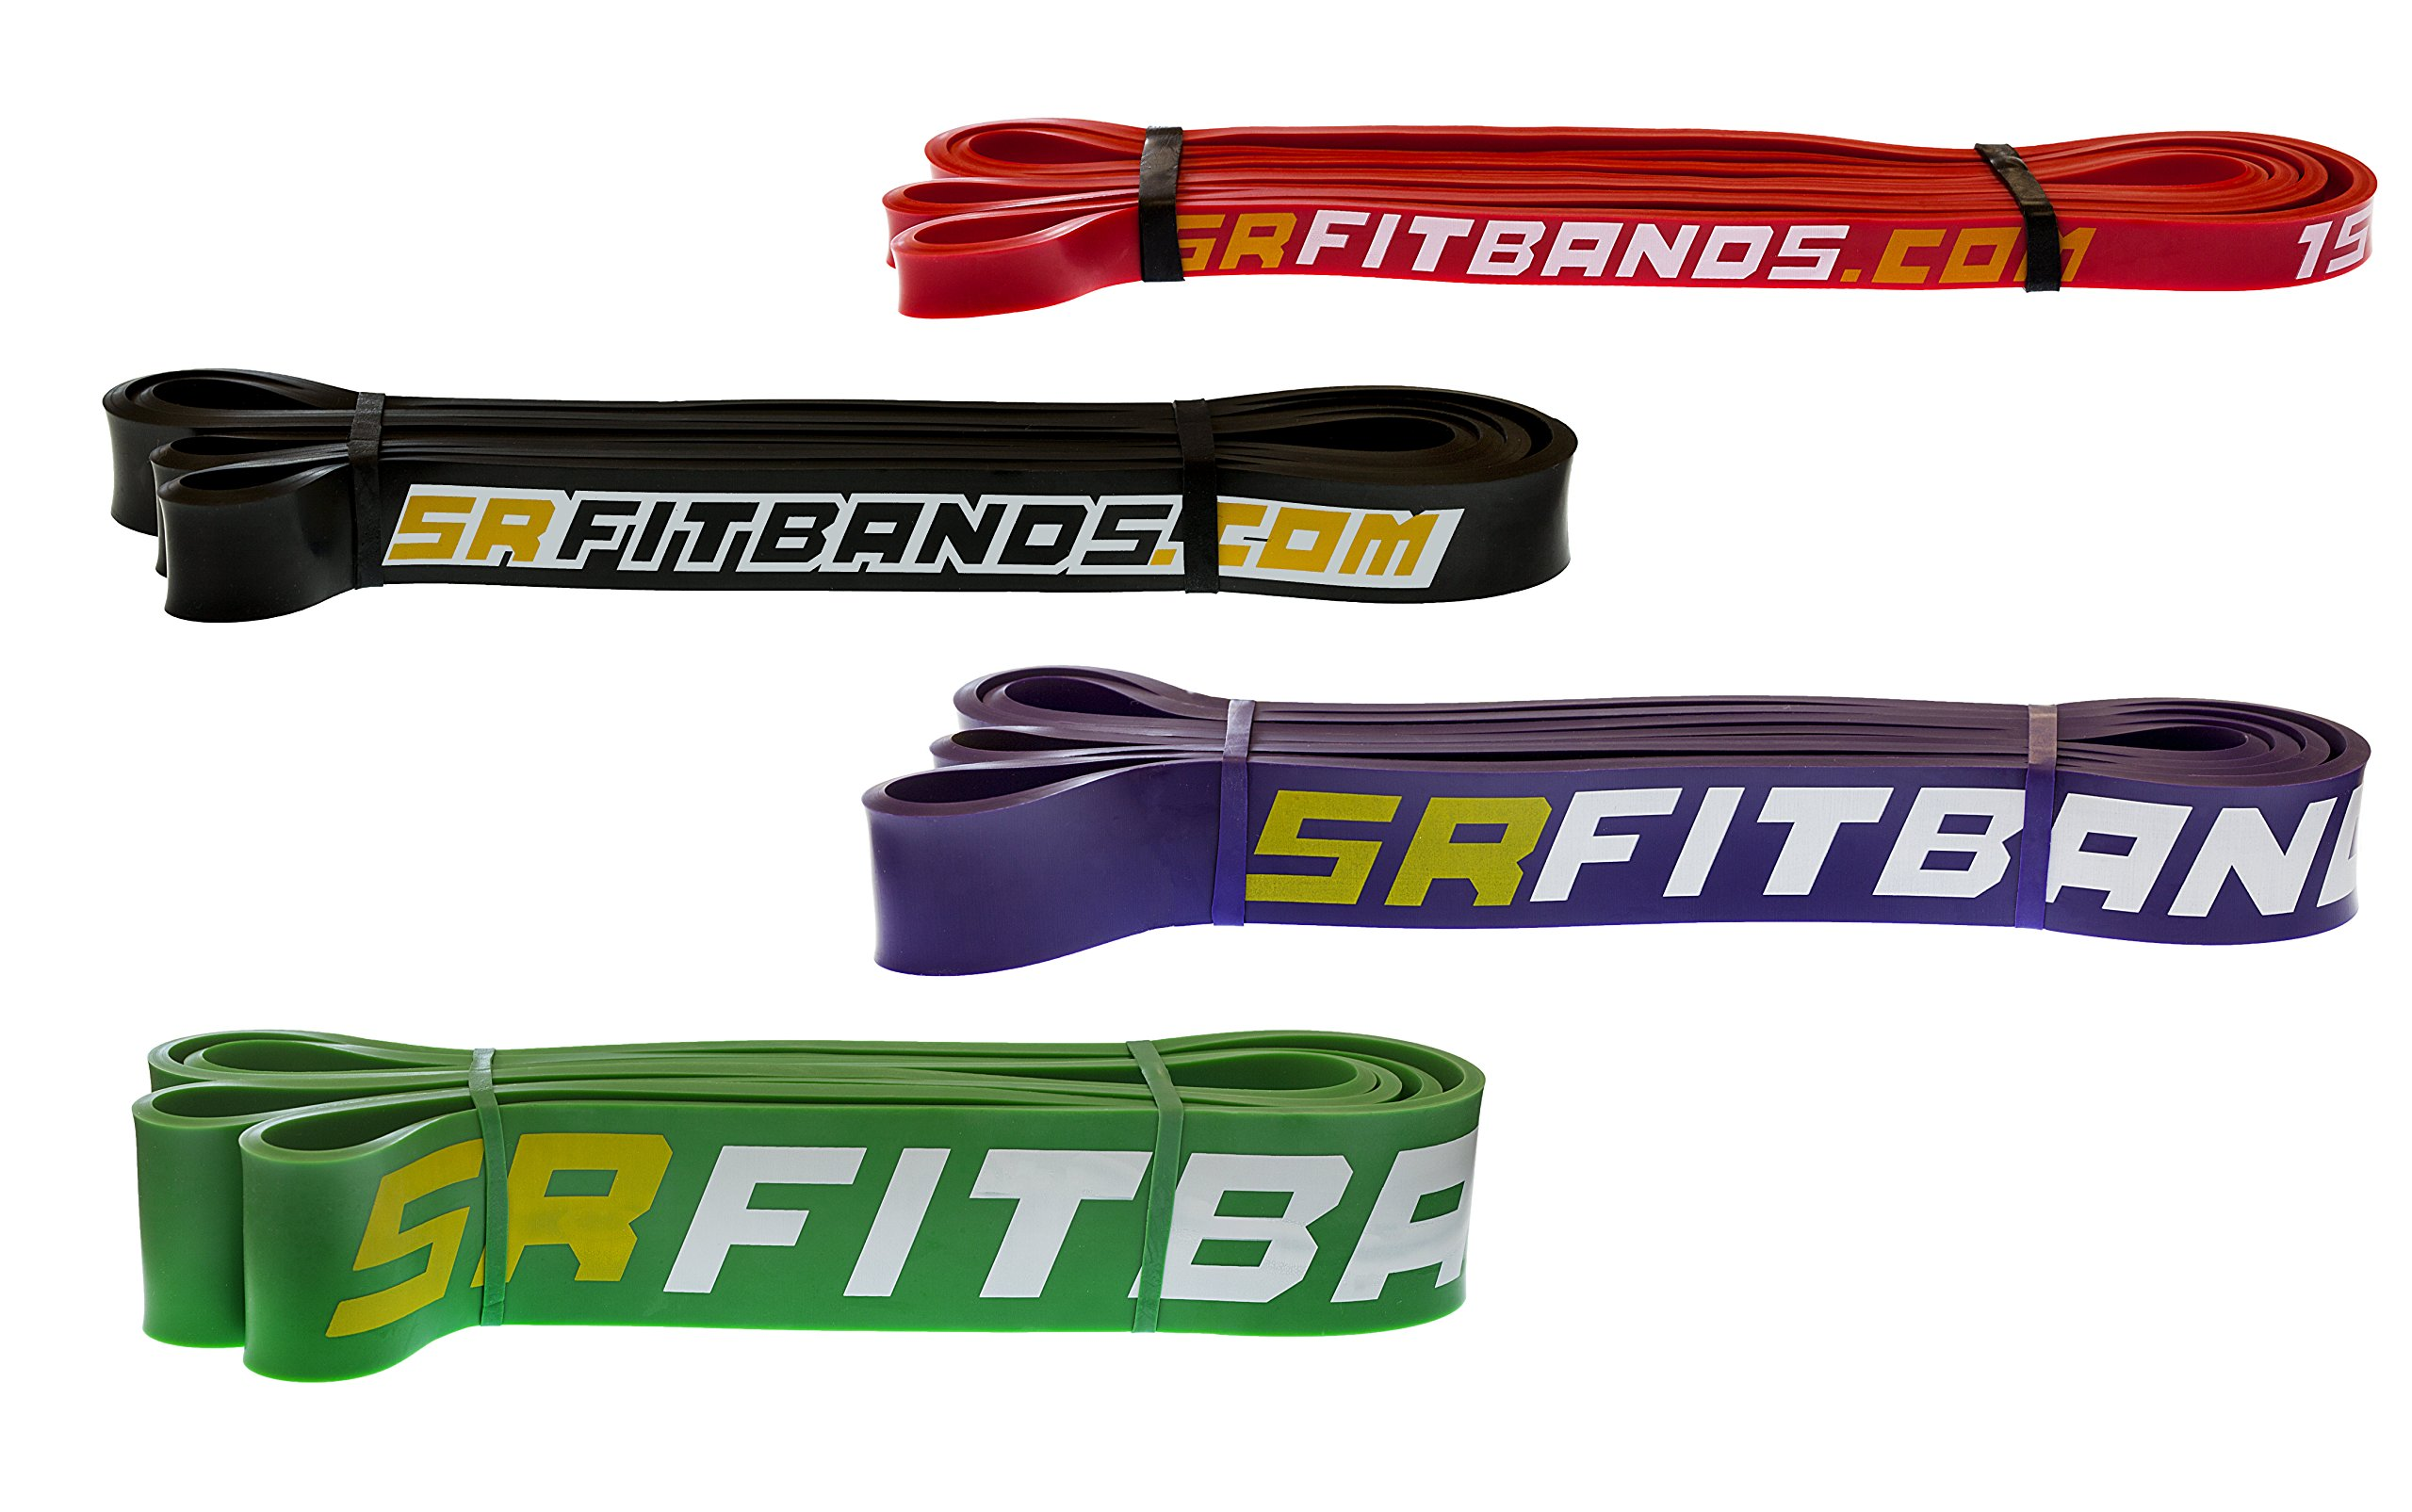 SR Fit Resistance Band   Legacy band without Attachment Loop - Perfect for Pull up Assist, Stretching, Powerlifting or Bodybuilding Workouts - Single Resistance Band - 41'' Loop